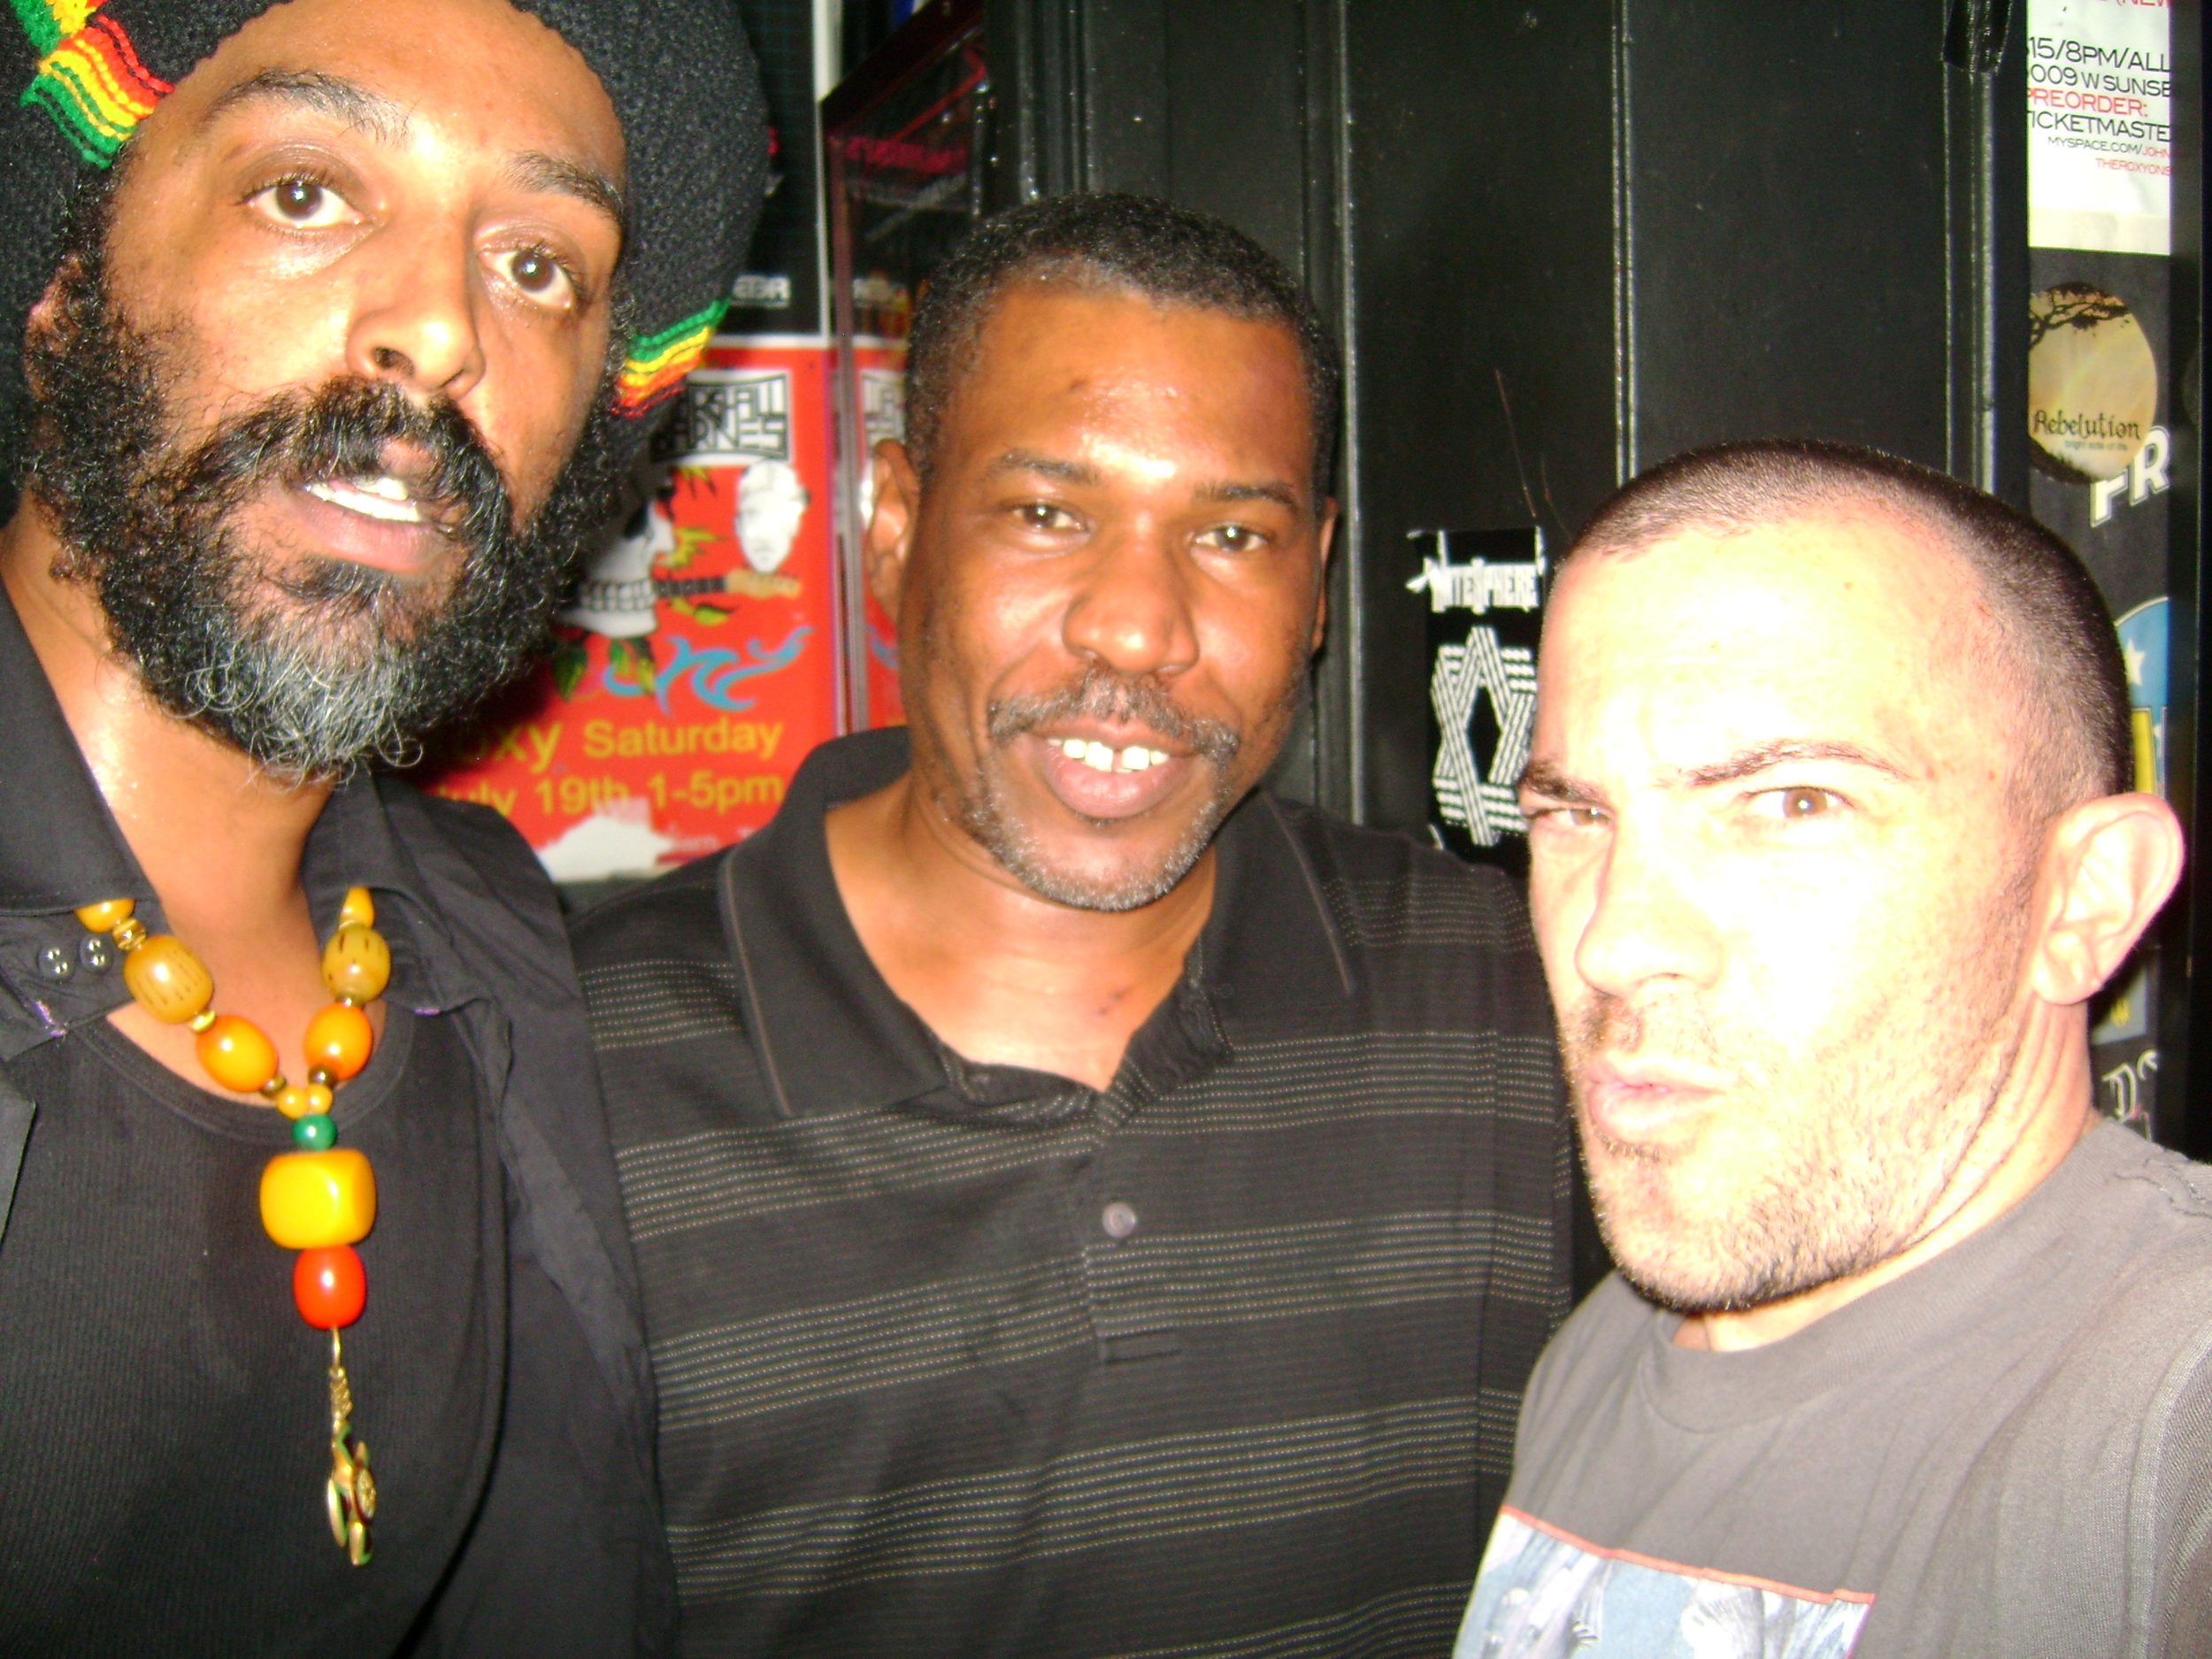 with Dub legend - Scientist. Backstage - The Roxy, Sunset Strip.